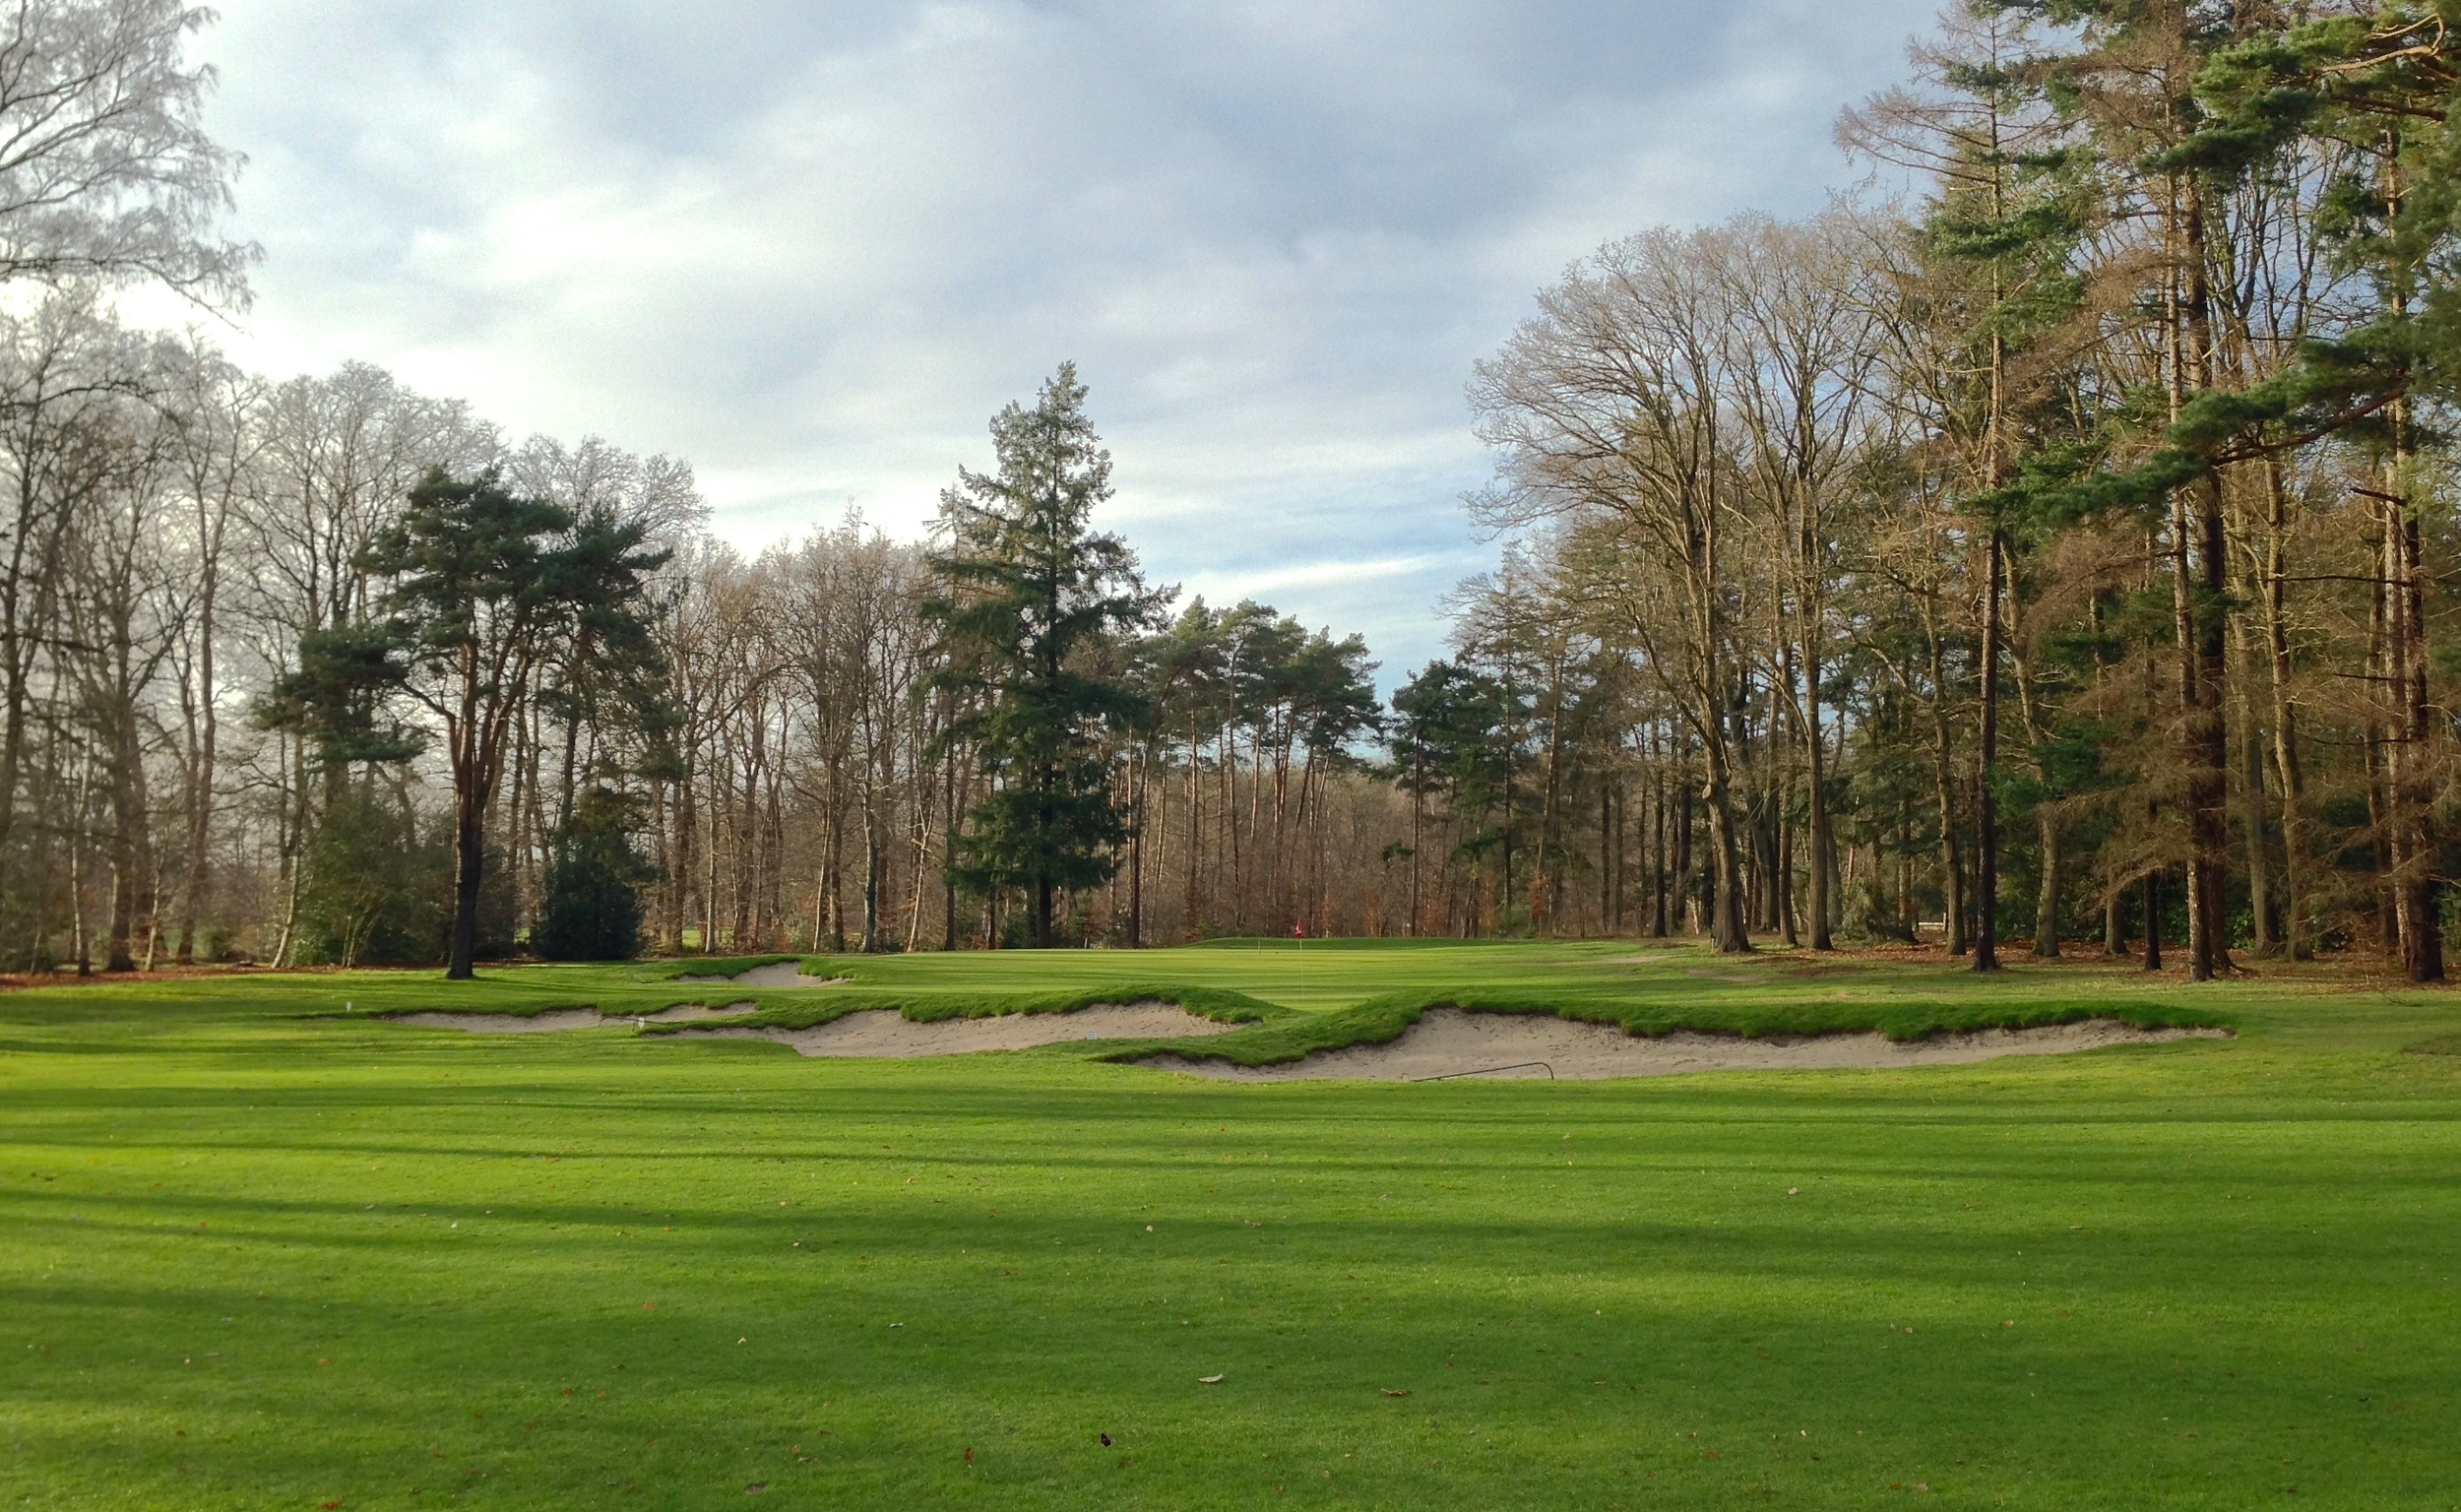 Hole 17 on last day of project in December.